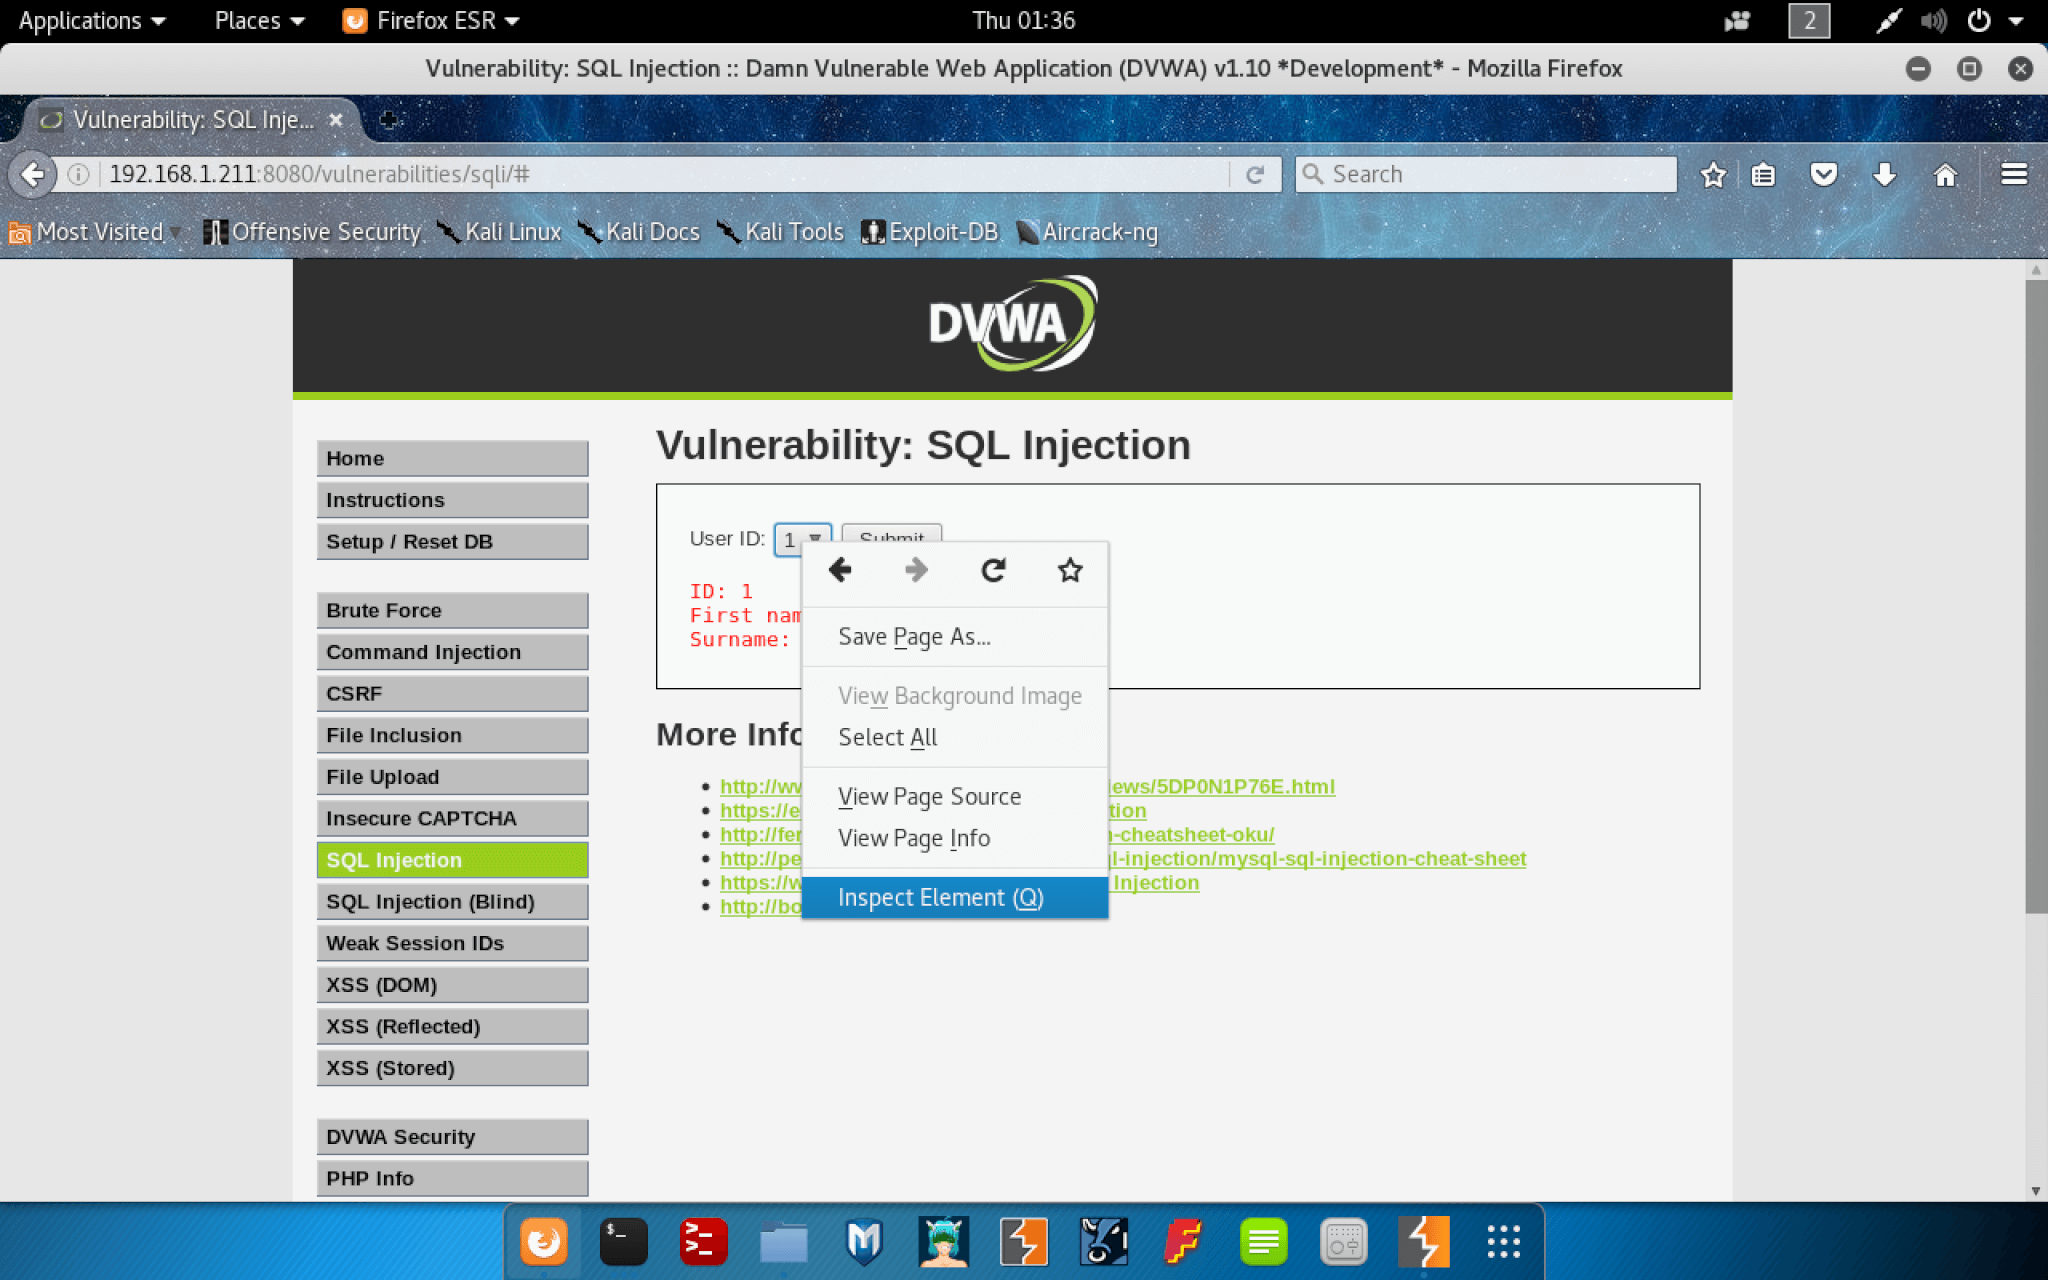 SQL Injection Inspect Element